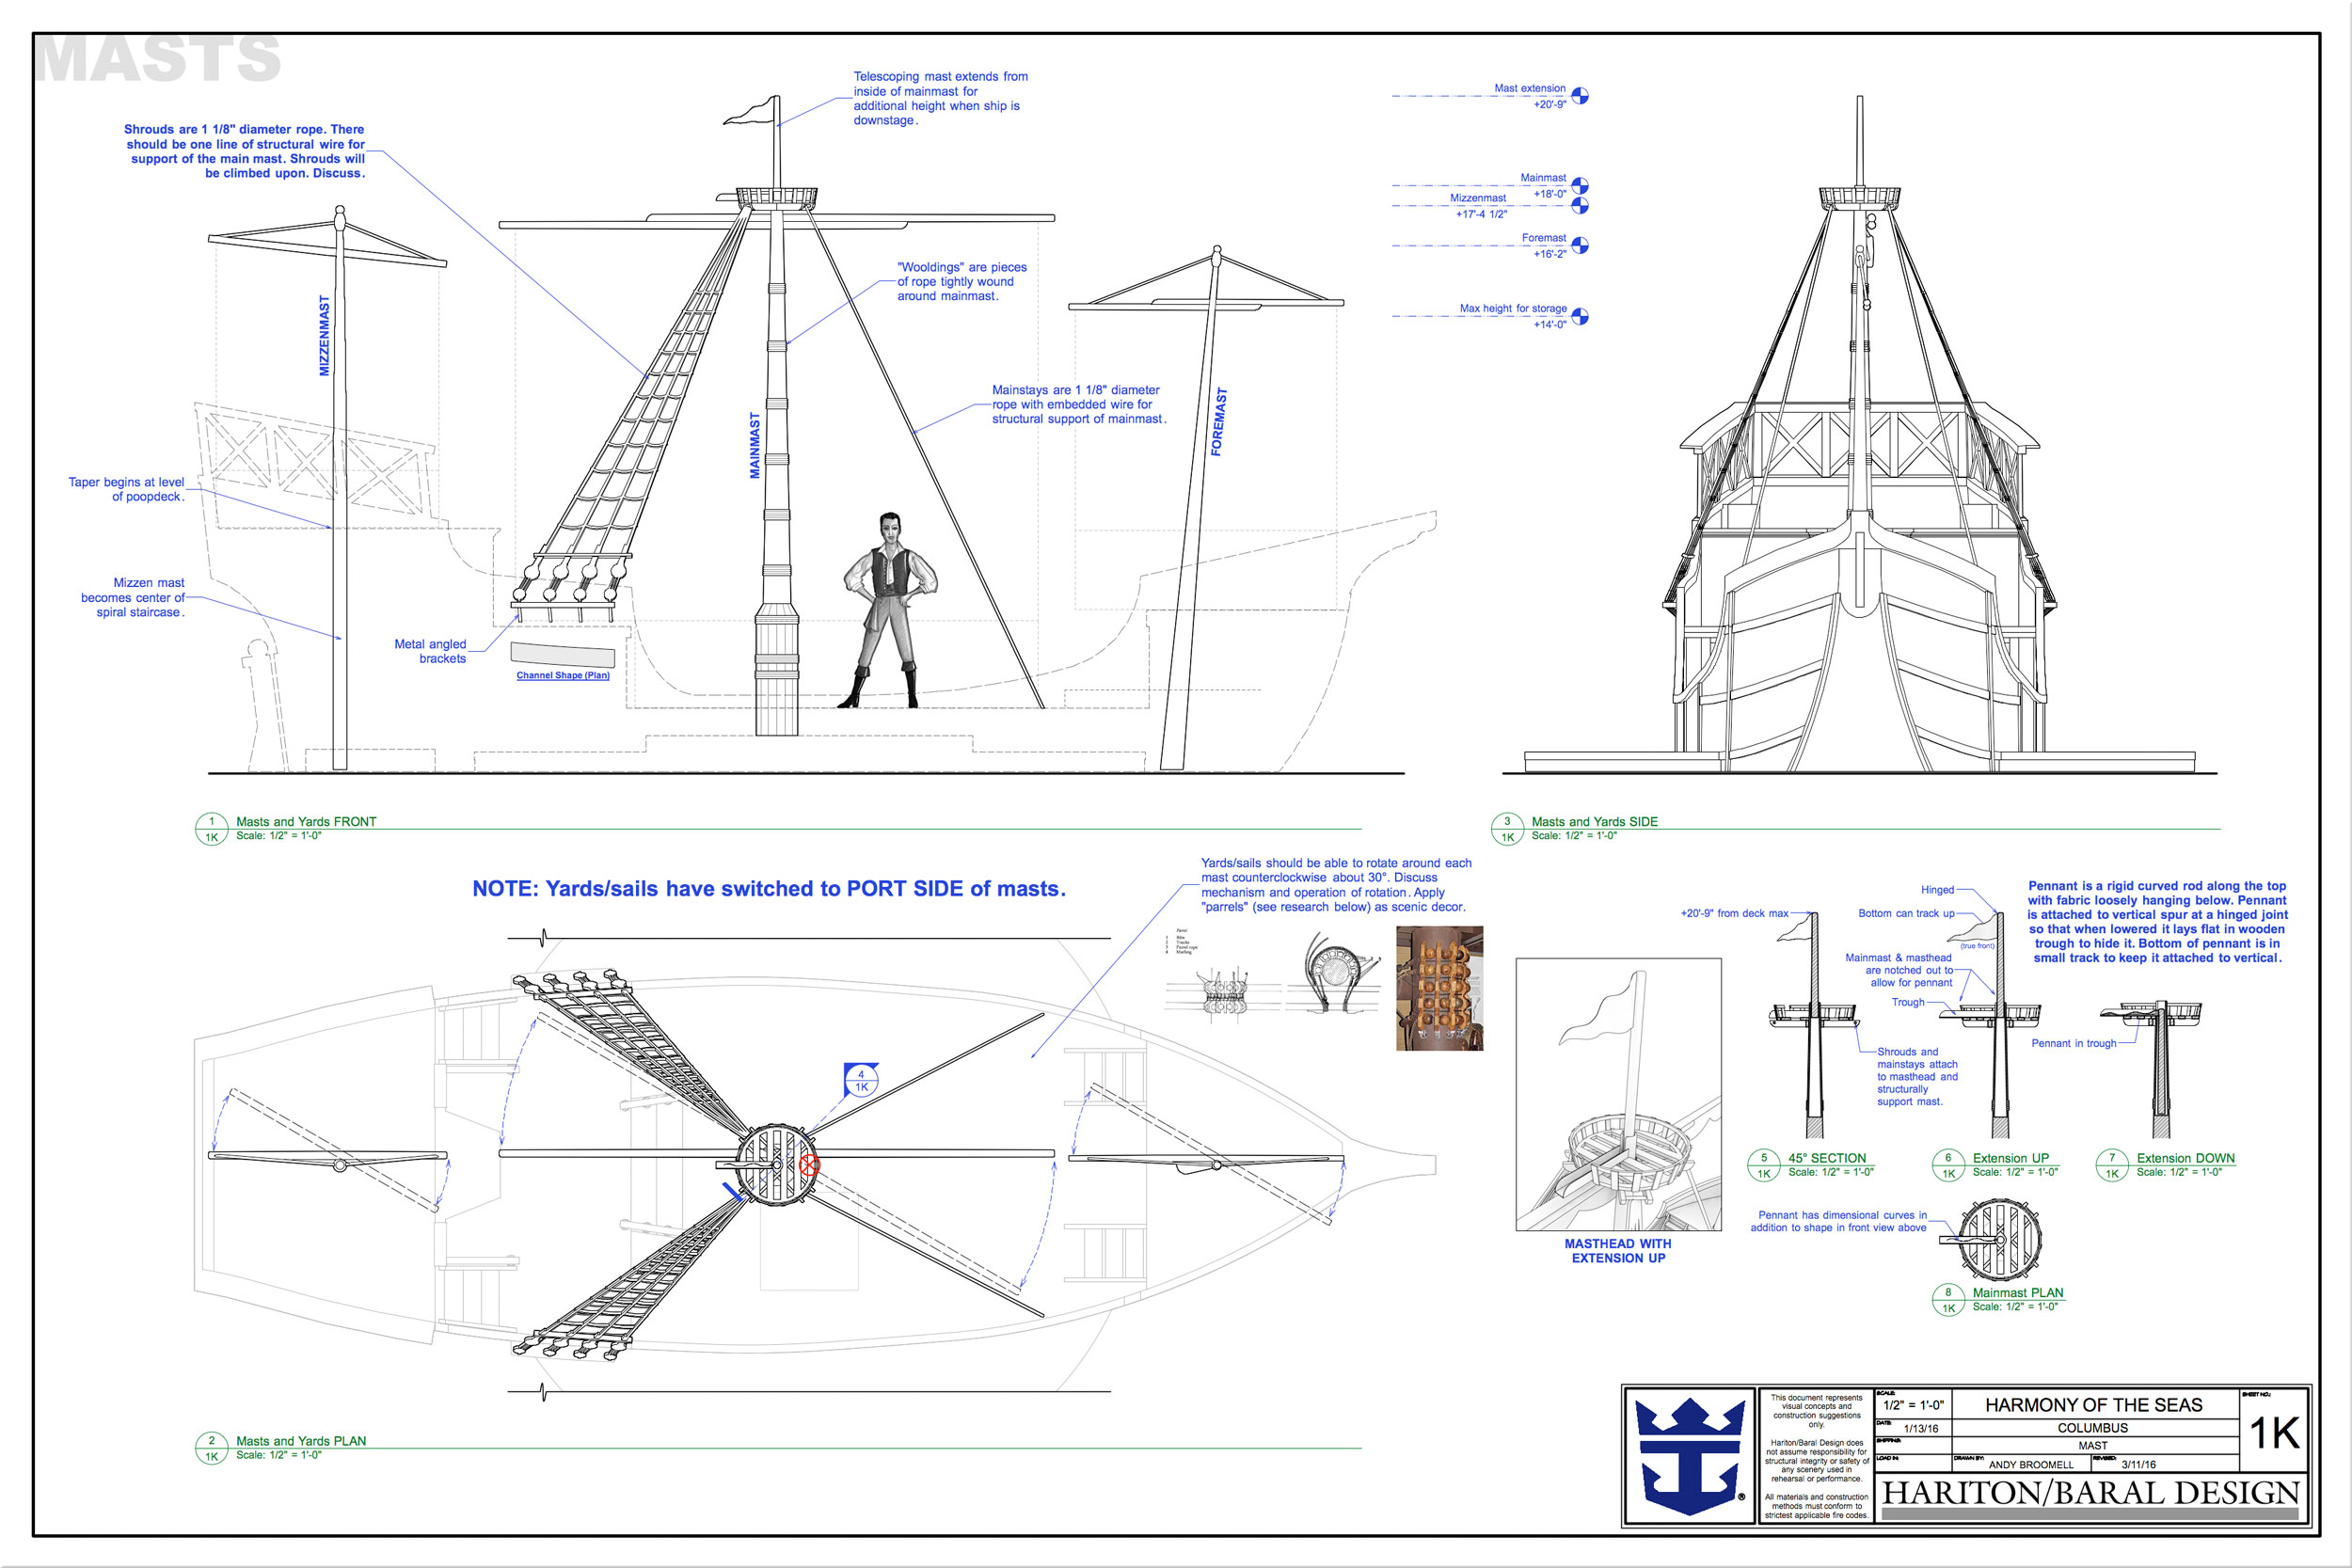 andy-broomell-drafting-columbus10-musical-vectorworks-scenic-design-scenery-plans-sailing-ship.jpg